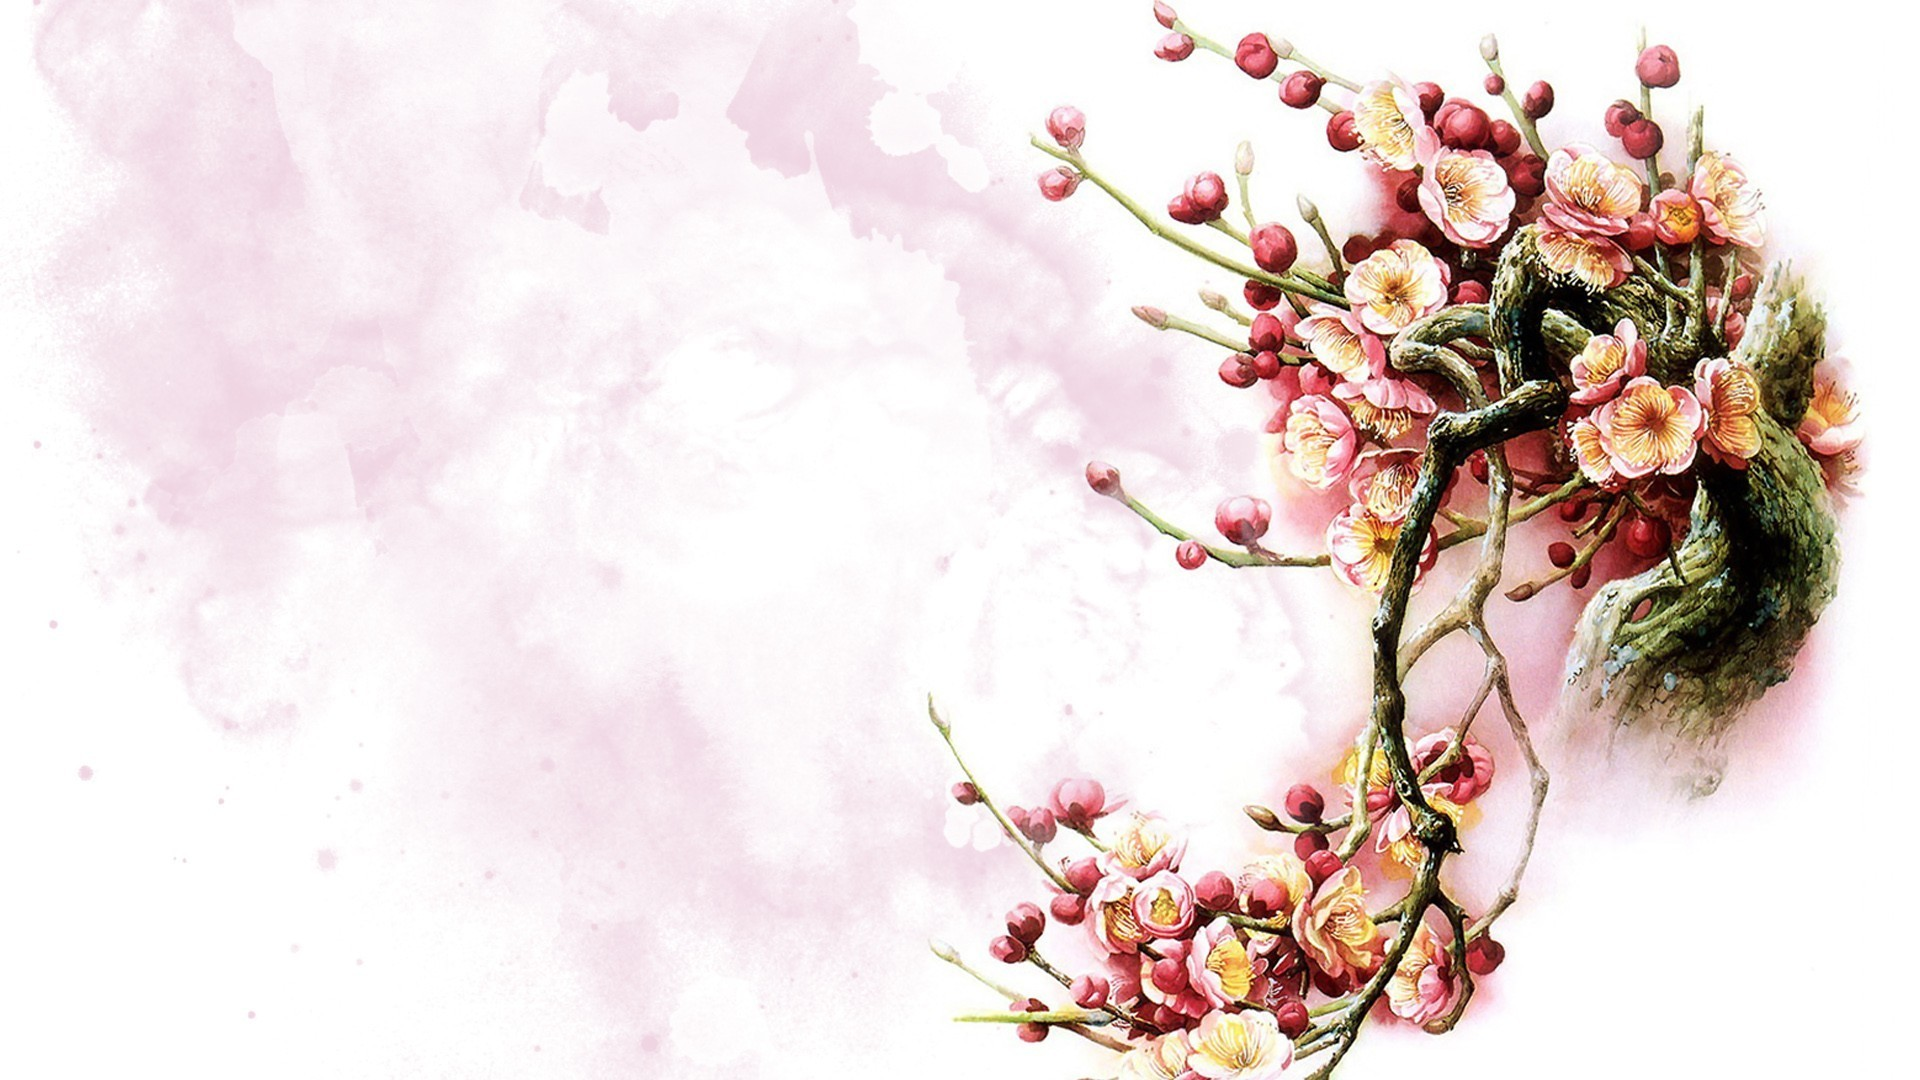 Res: 1920x1080, Oriental Painting Fleur Flower Blossoms Watercolor Pink Chinese Spring  Floral Tree Sakura Flowers Wallpaper Large Size Detail